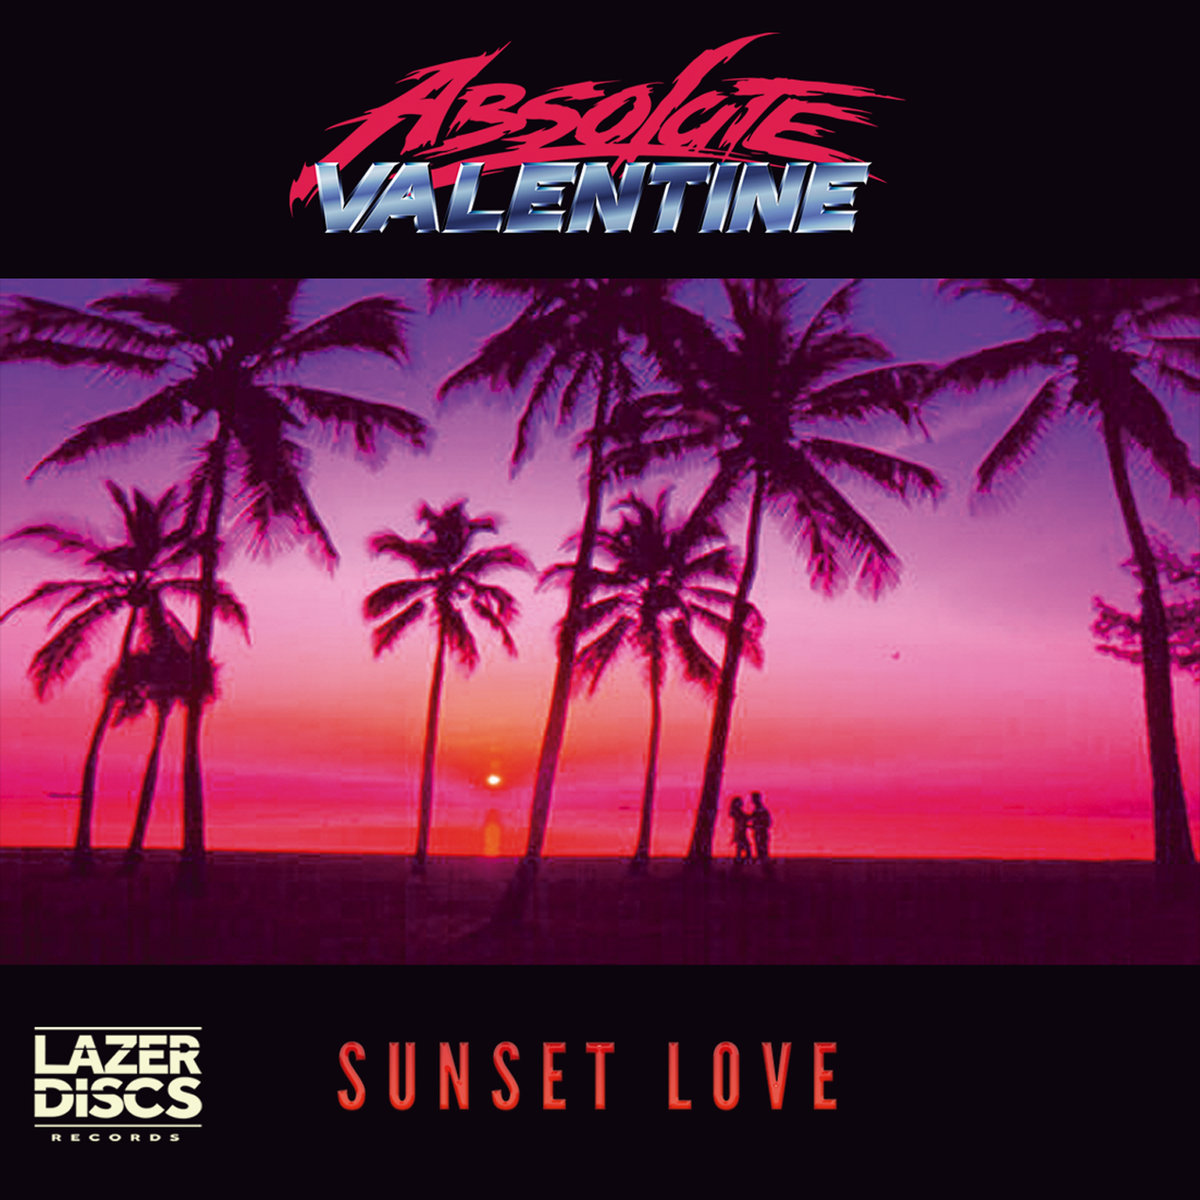 Absolute Valentine - Sunset Love 6 - fanzine